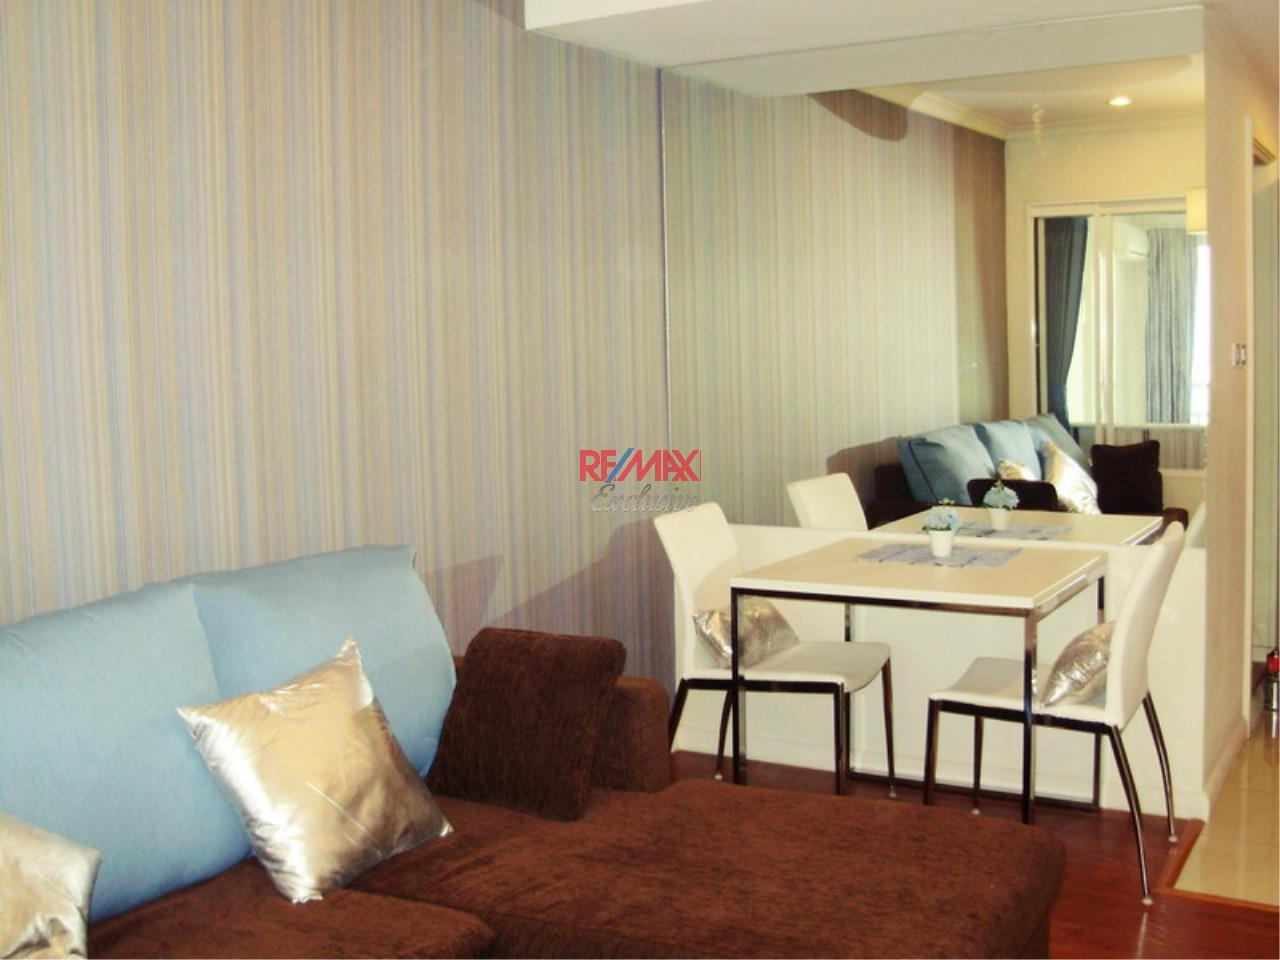 RE/MAX Exclusive Agency's Grand Park View 1 Bedroom nice Decorated for sale 3700000 5